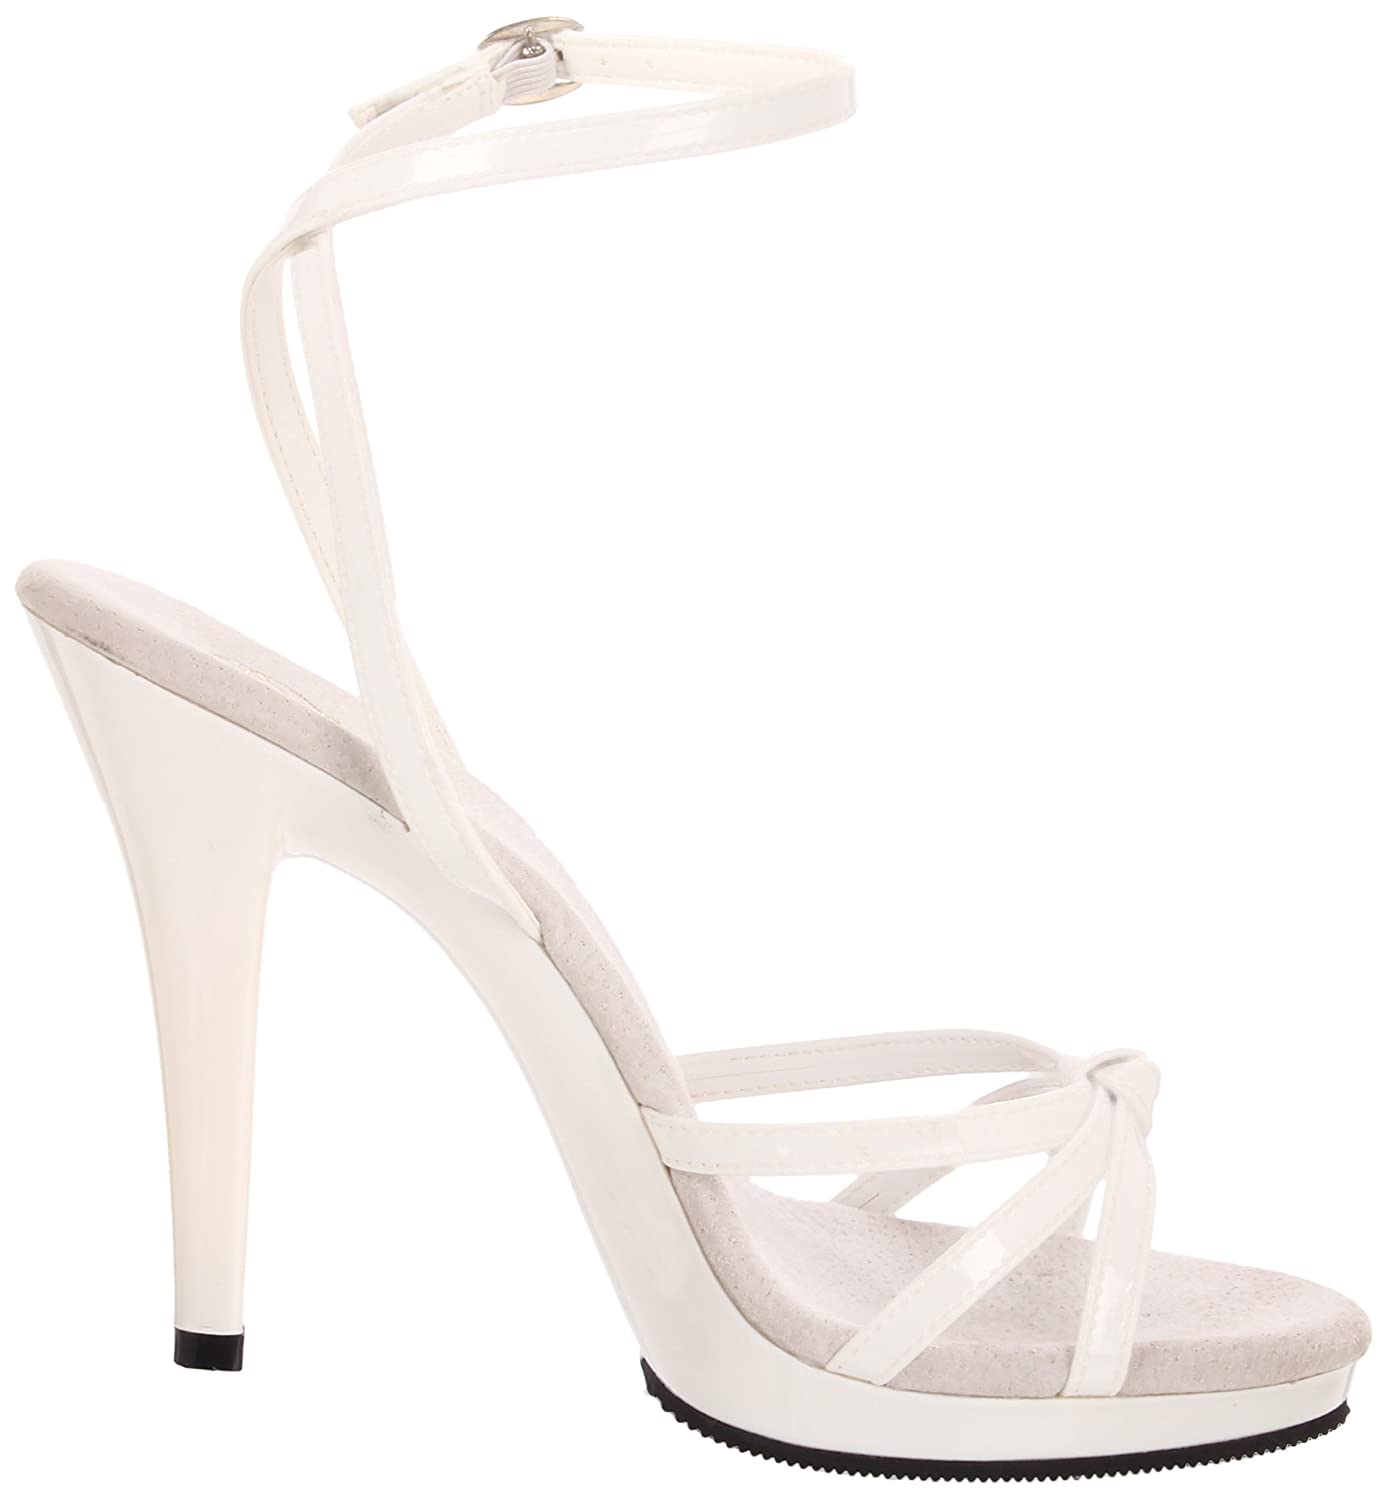 Ouvert Bout Flair Femme Fabulicious 436Sandales yn8ONwvmP0